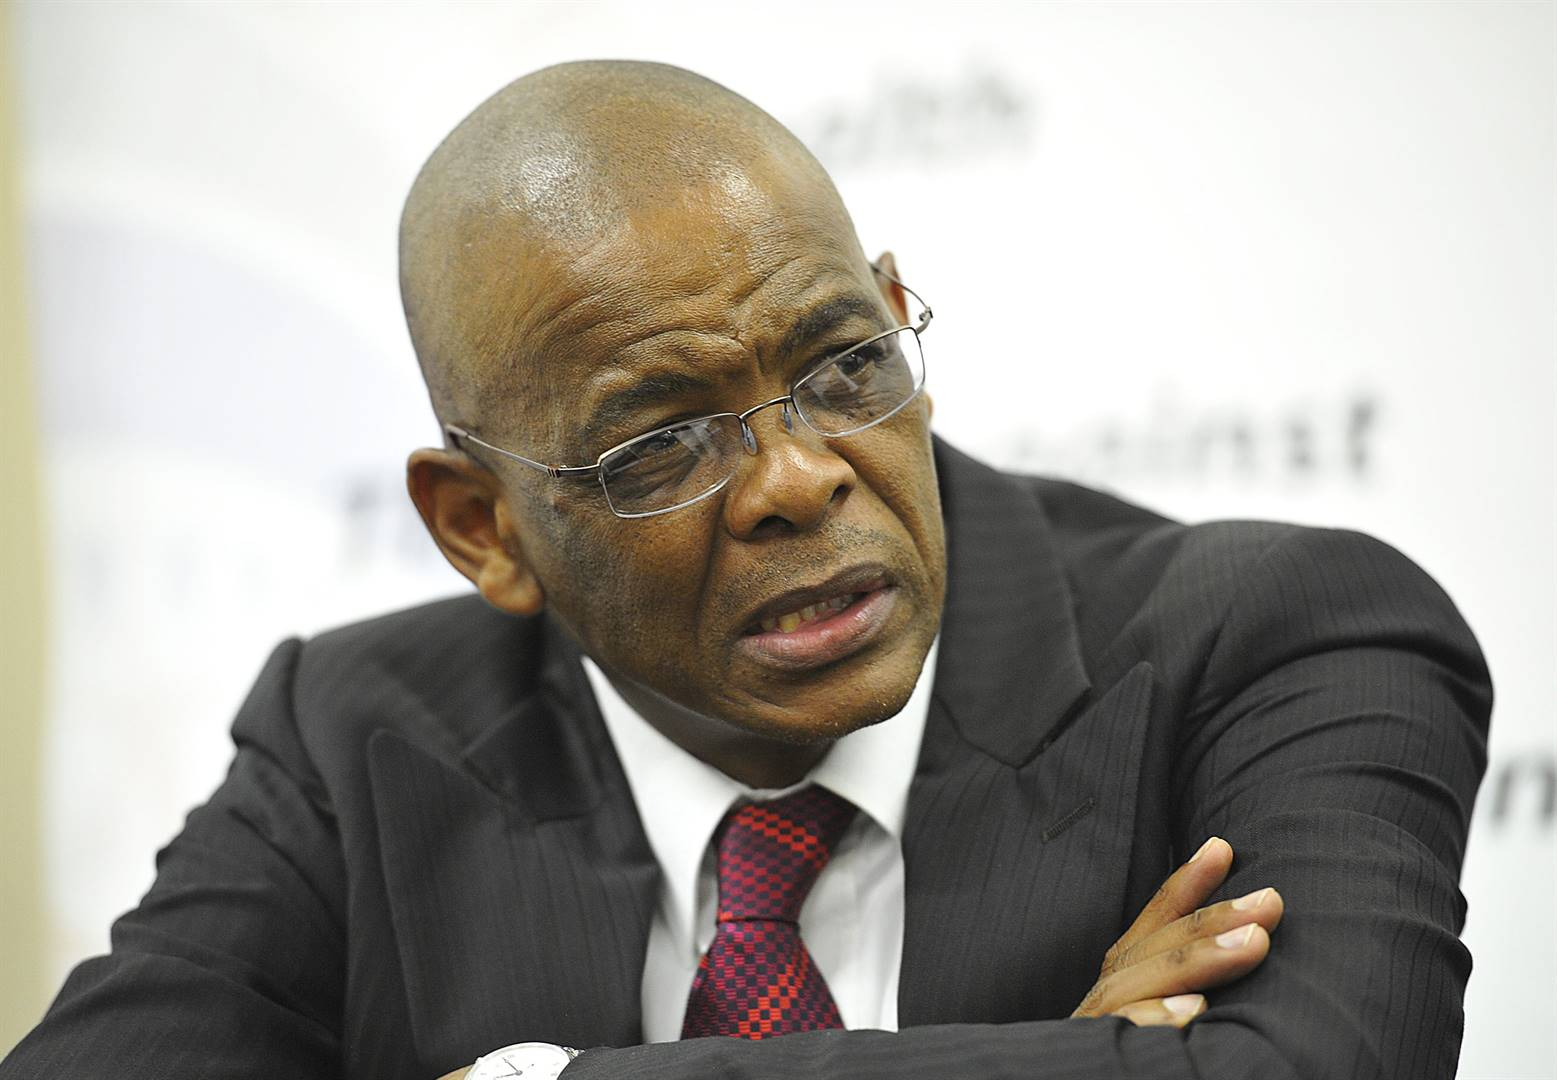 News24.com | 11 DA Johannesburg councillors want to join the ANC - Magashule